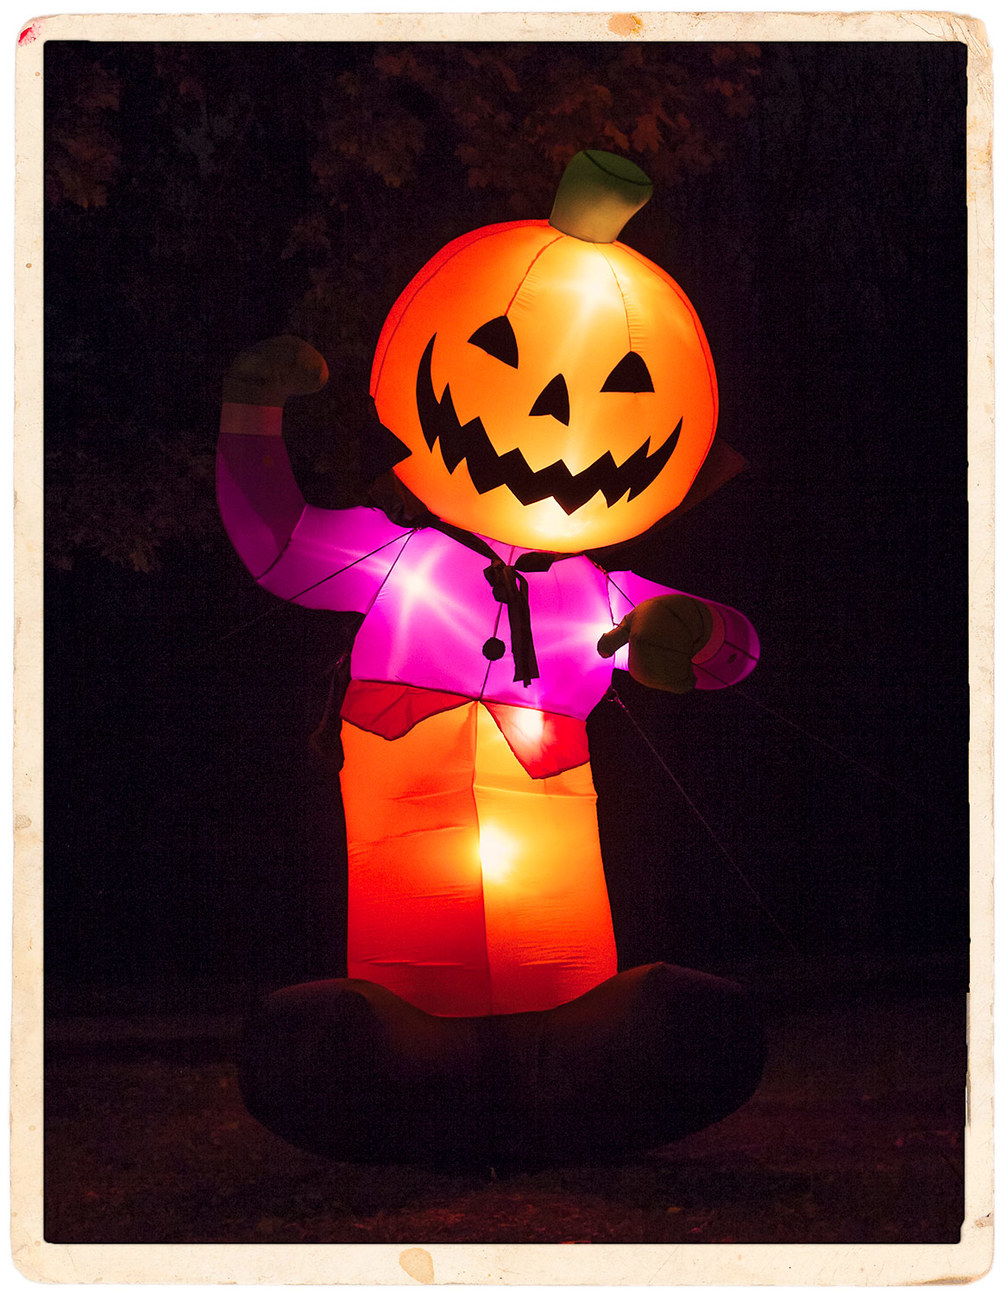 An inflatable jack-o'-lantern man and Halloween display in a yard photographed at night.